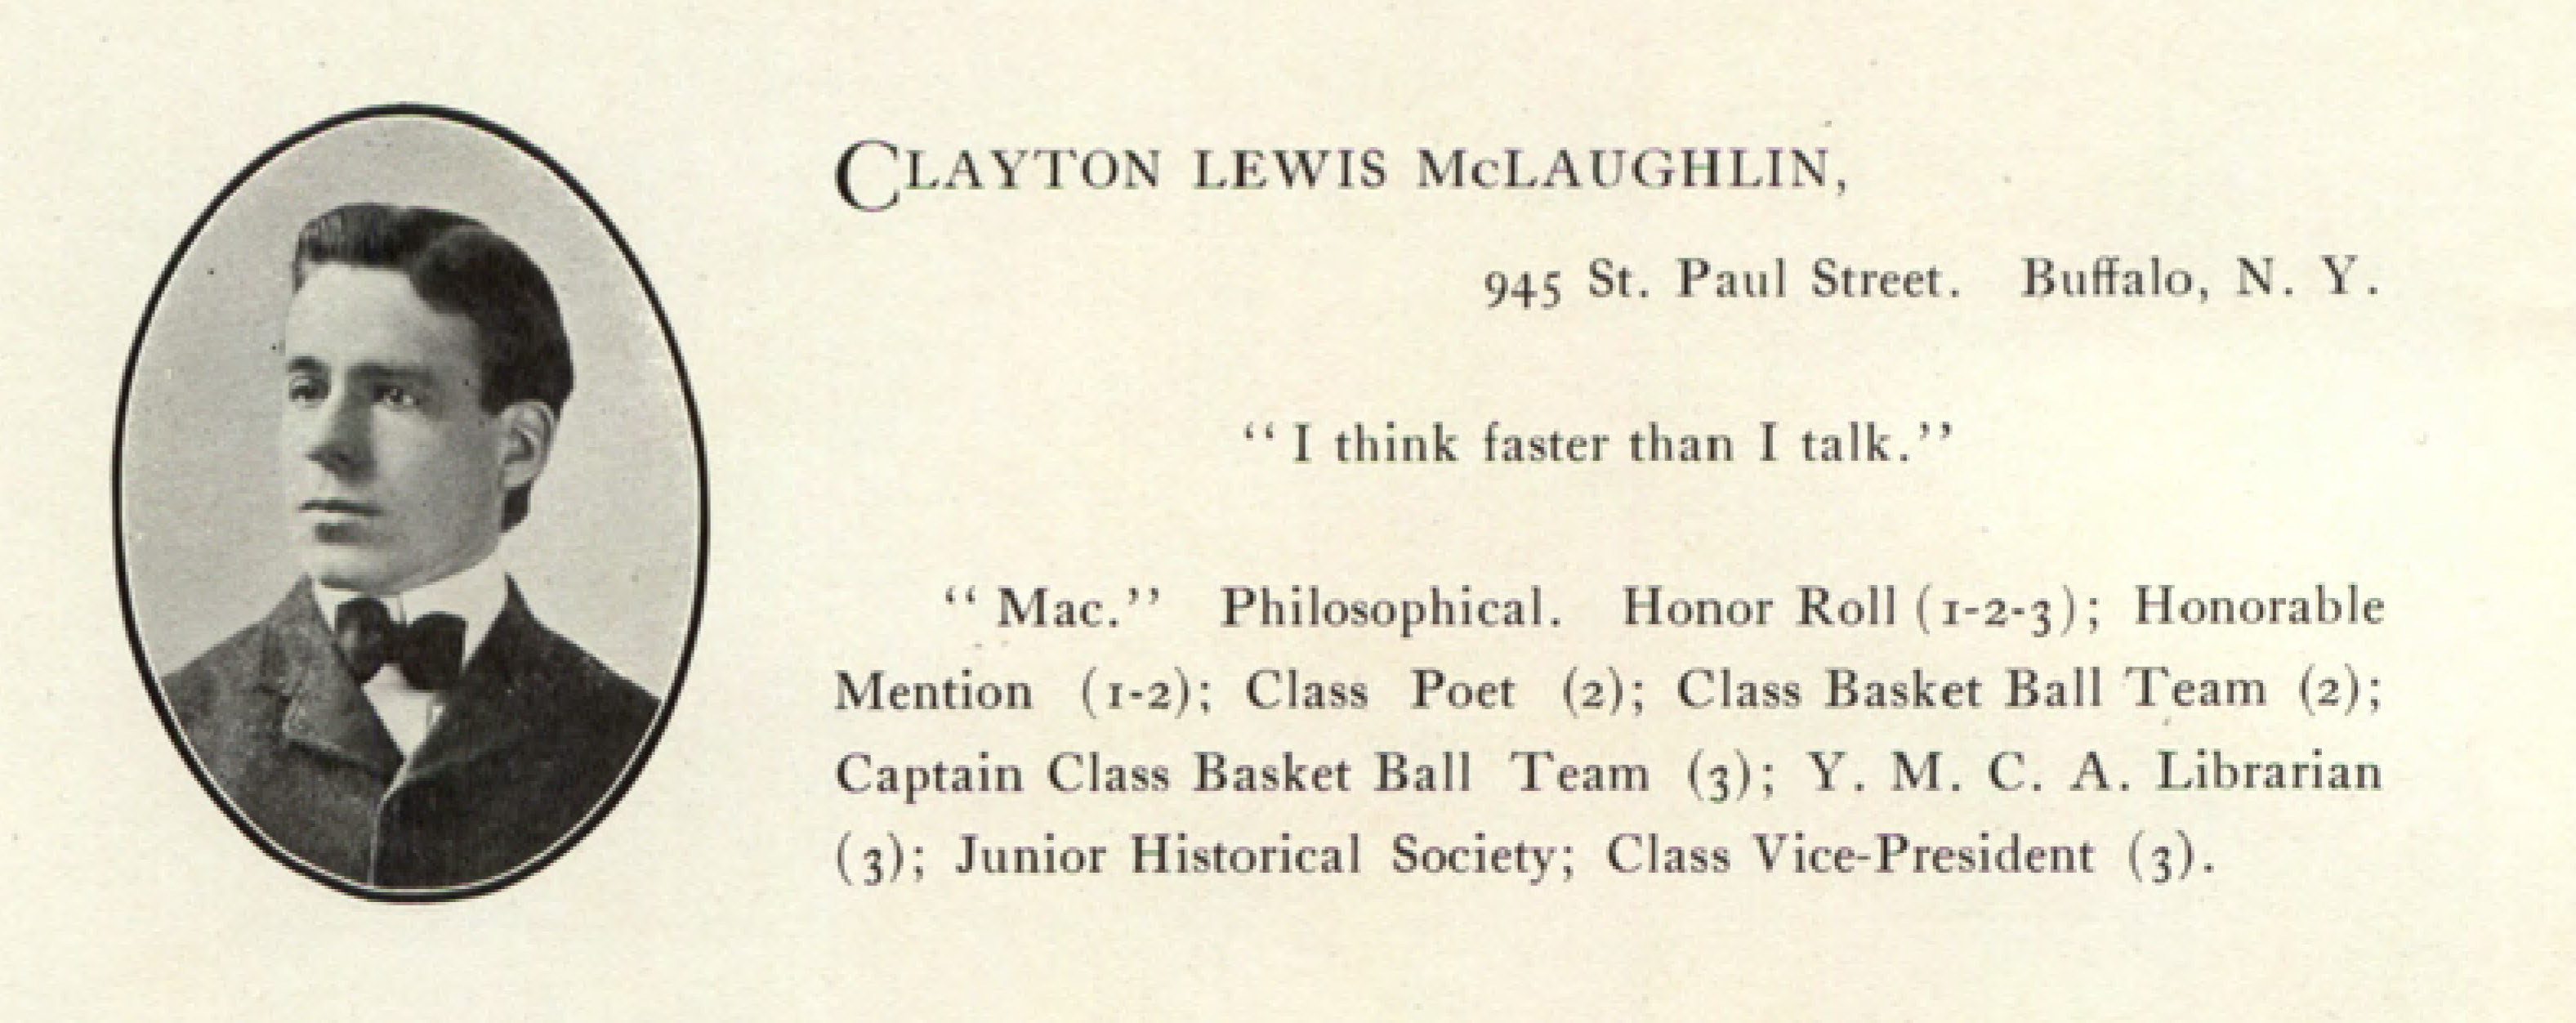 McClaughlin, 1903 Interpres yearbook